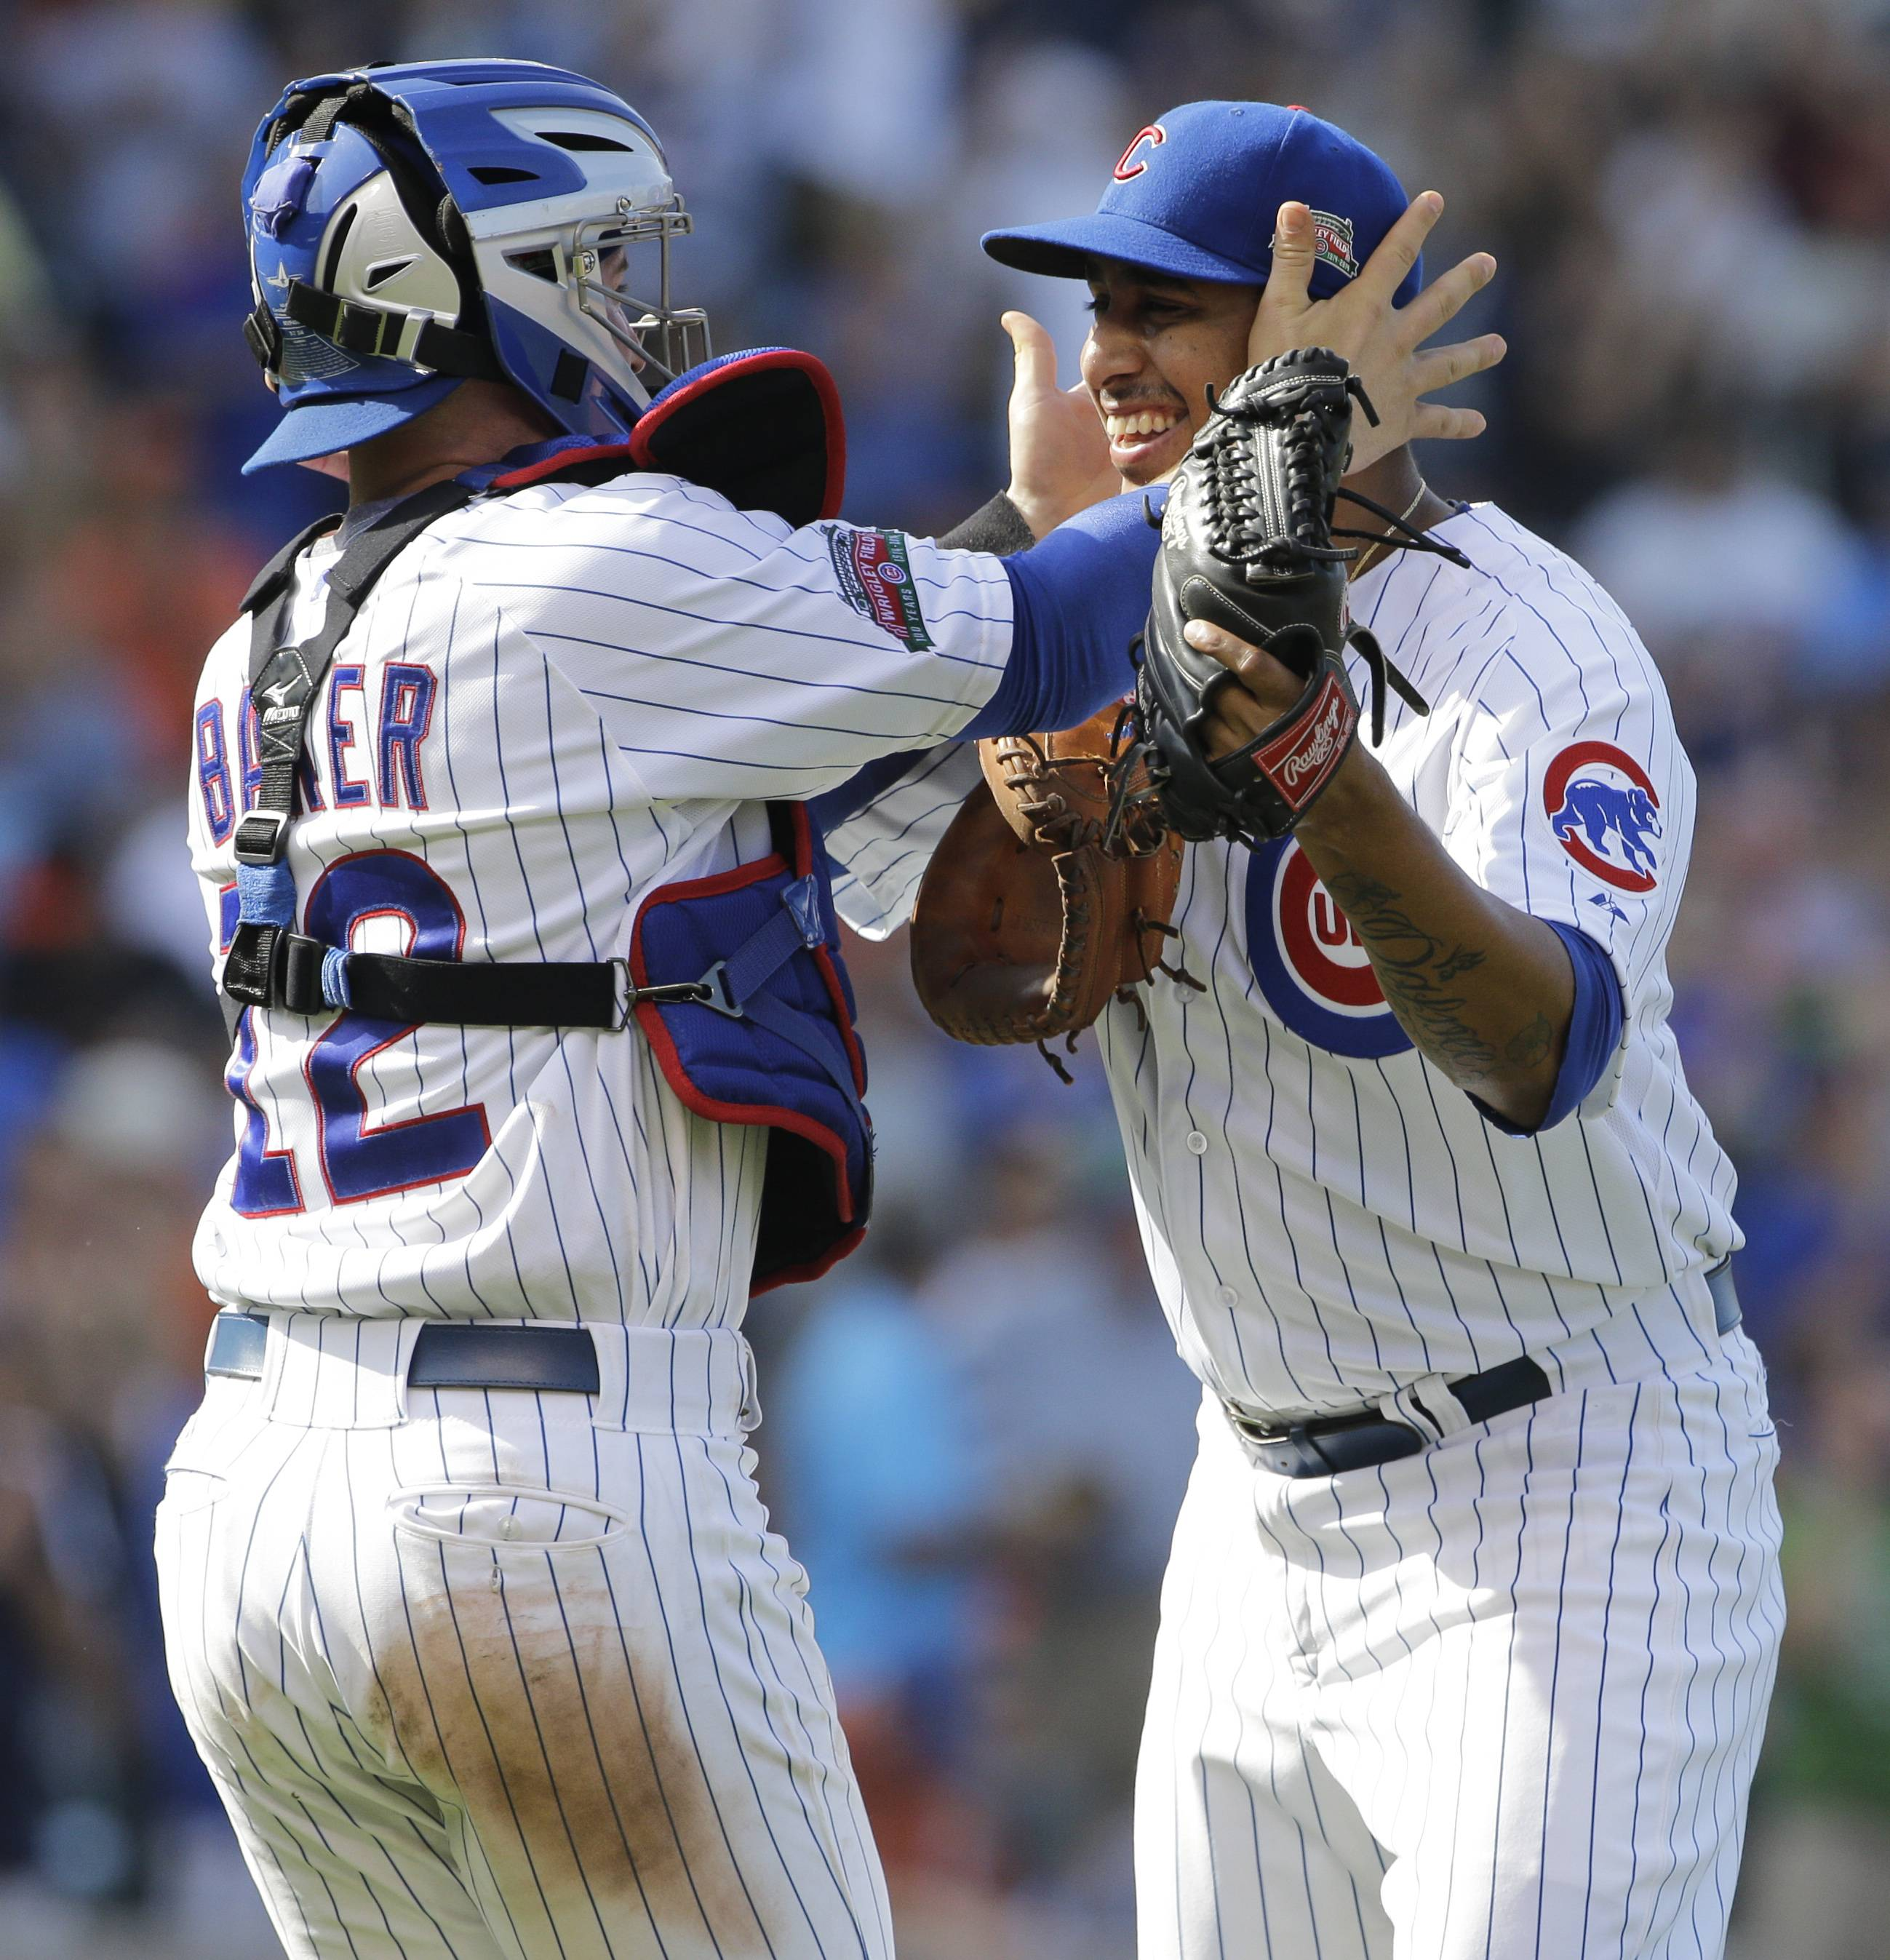 Cubs relief pitcher Hector Rondon celebrates with catcher John Baker after the Cubs defeated the Baltimore Orioles 4-1 on Friday.